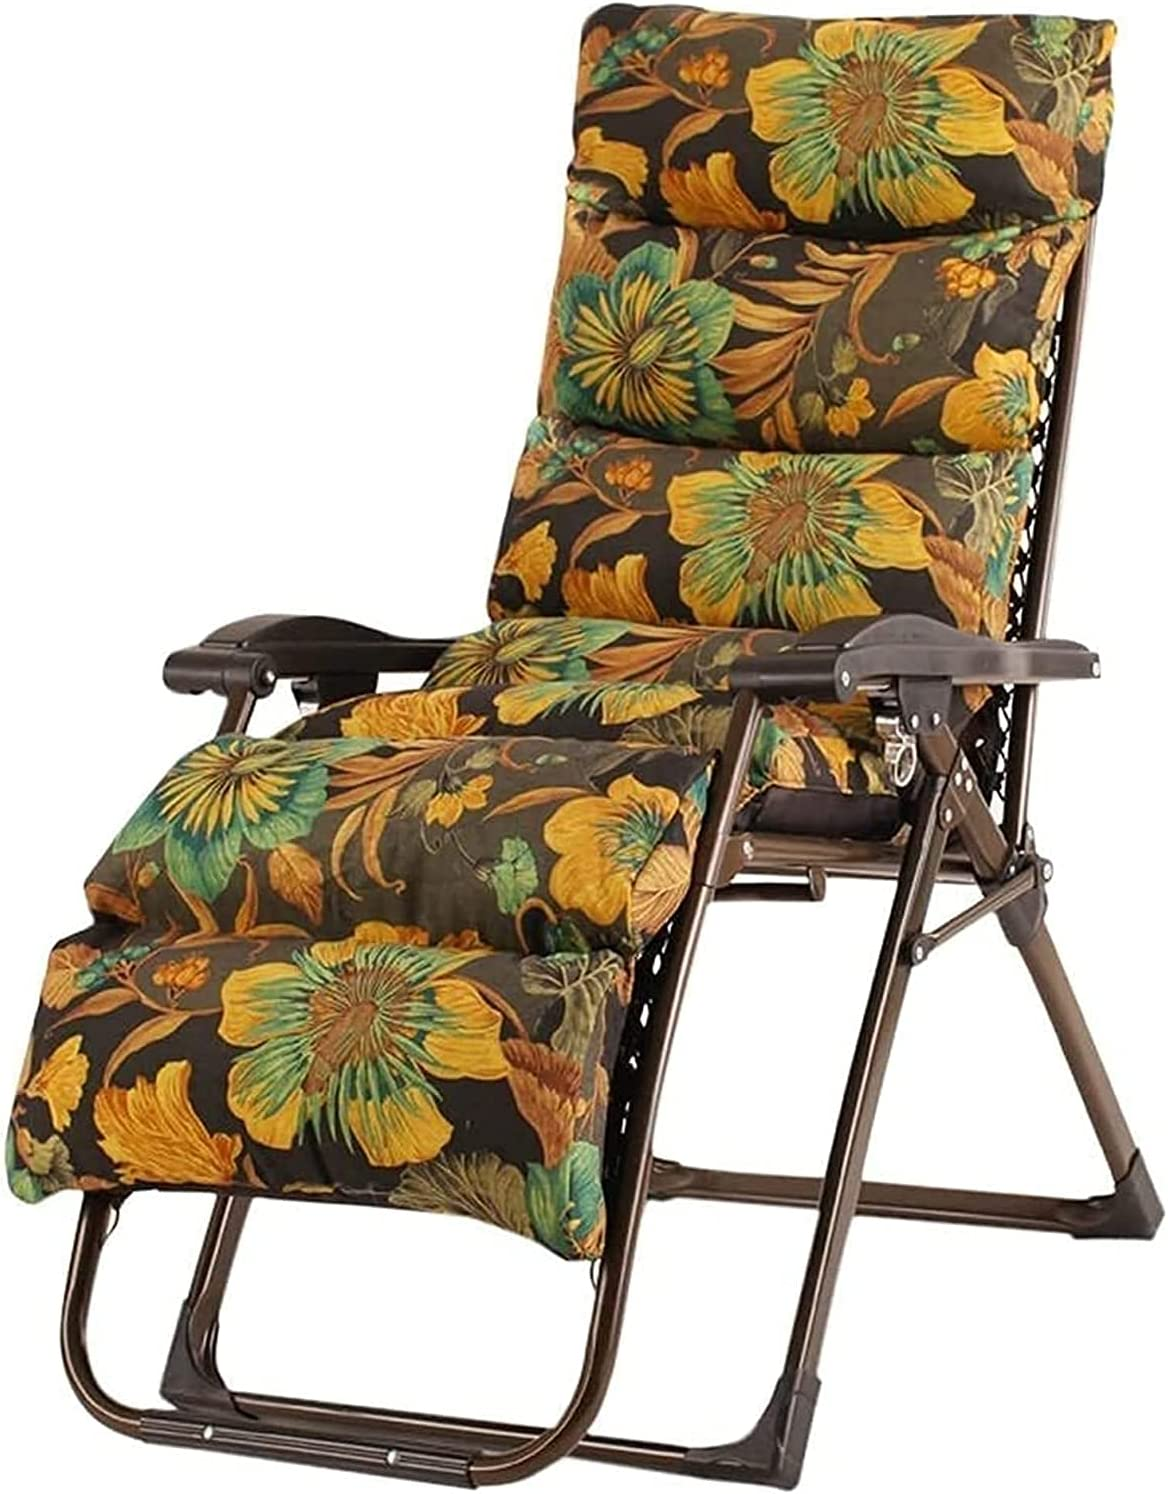 ZHZHUANG Flowers Home Recliner Max 45% OFF Folding Office Boston Mall Lunch Break Chair